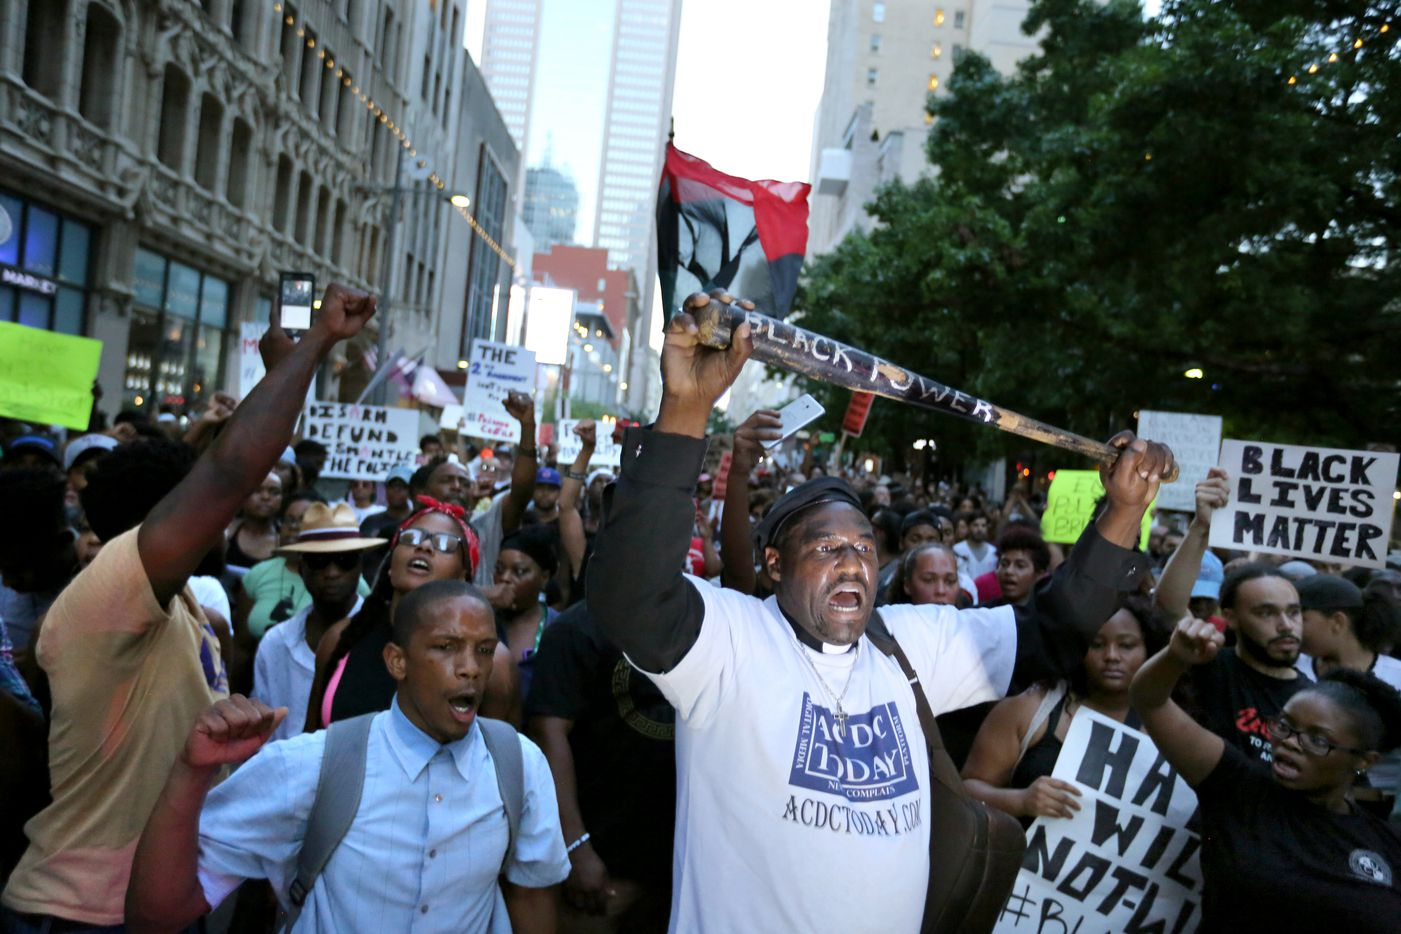 Protester Ernest Walker (front right) and others marched peacefully down Main Street in downtown Dallas on July 7, 2016. As the rally and march were winding down, Micah Xavier Johnson opened fire, killing five police officers.